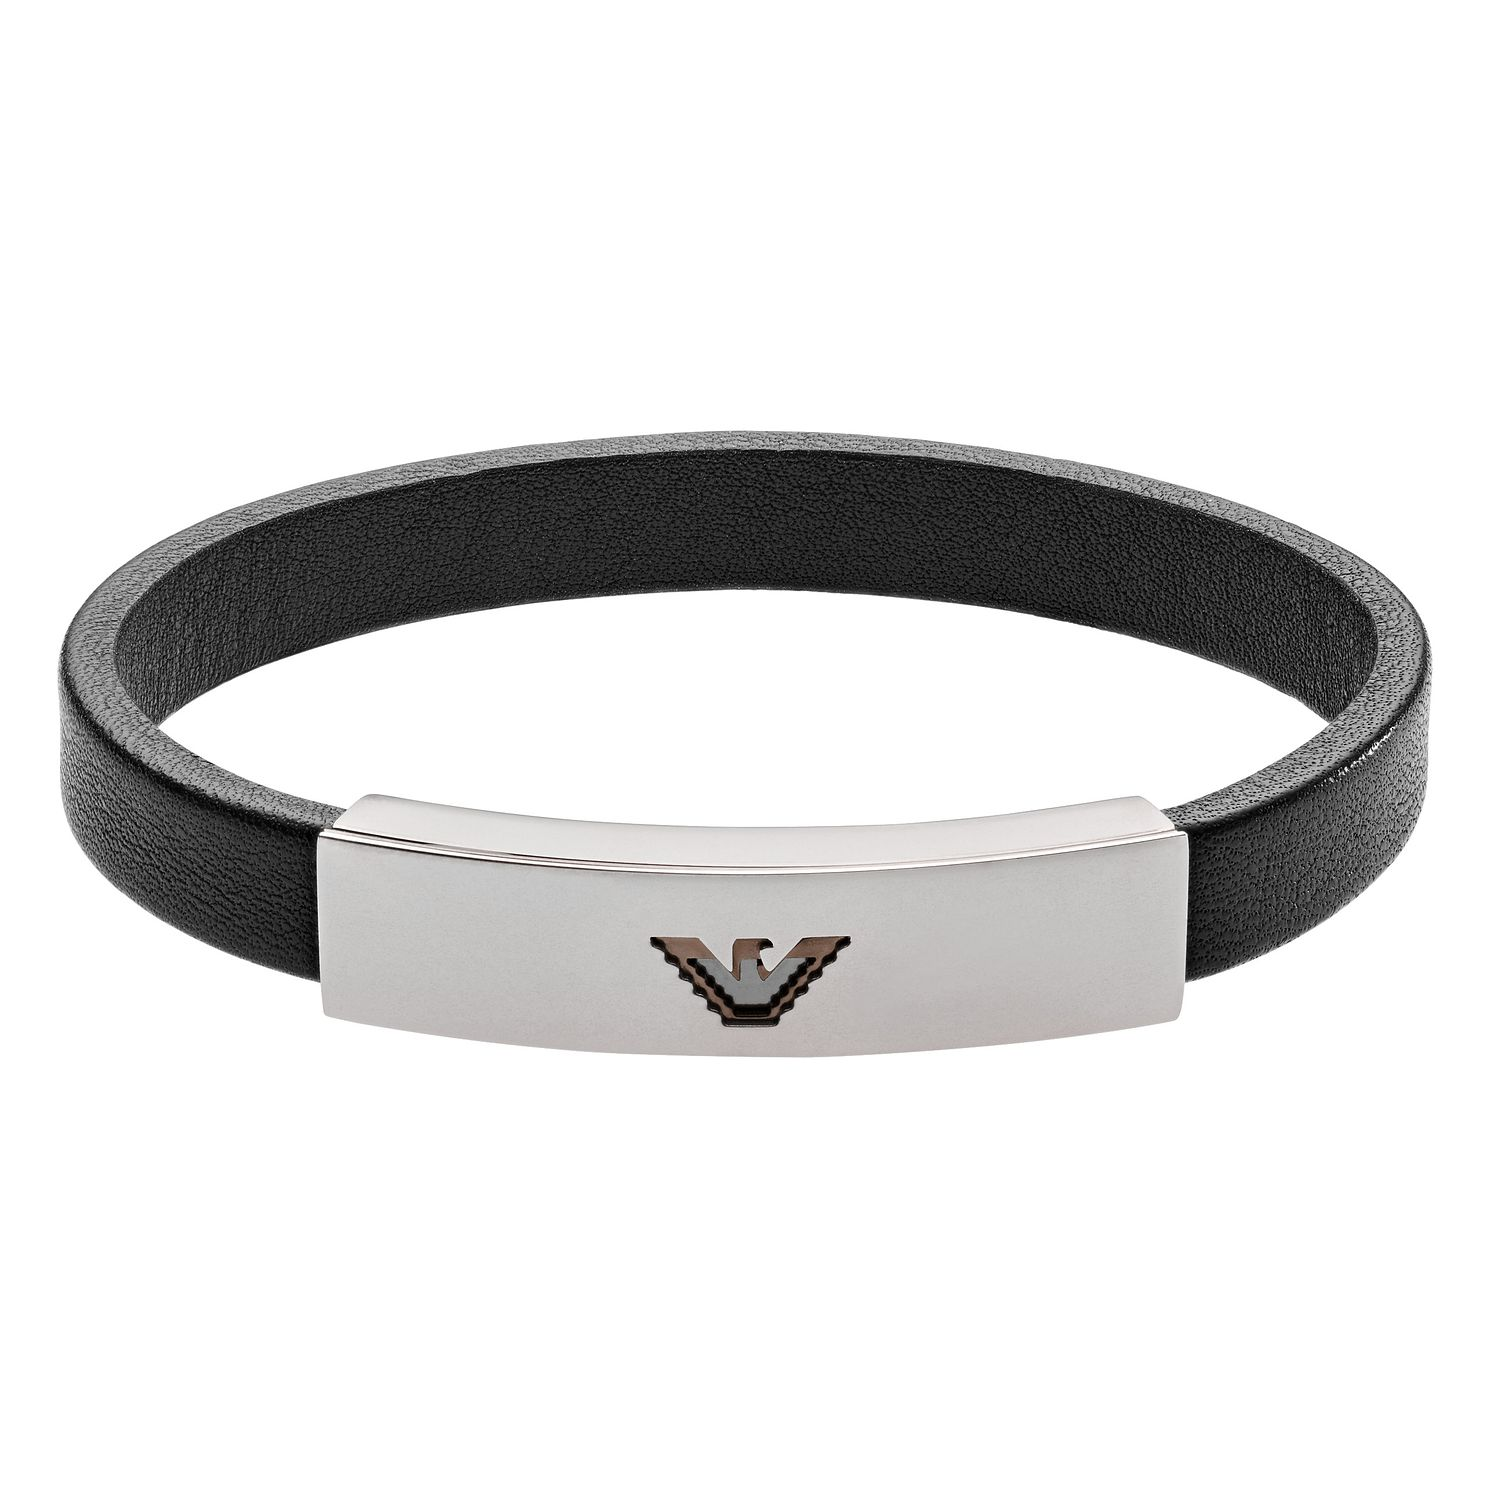 Emporio Armani Men's Black Leather Emblem Bracelet - Product number 4116747